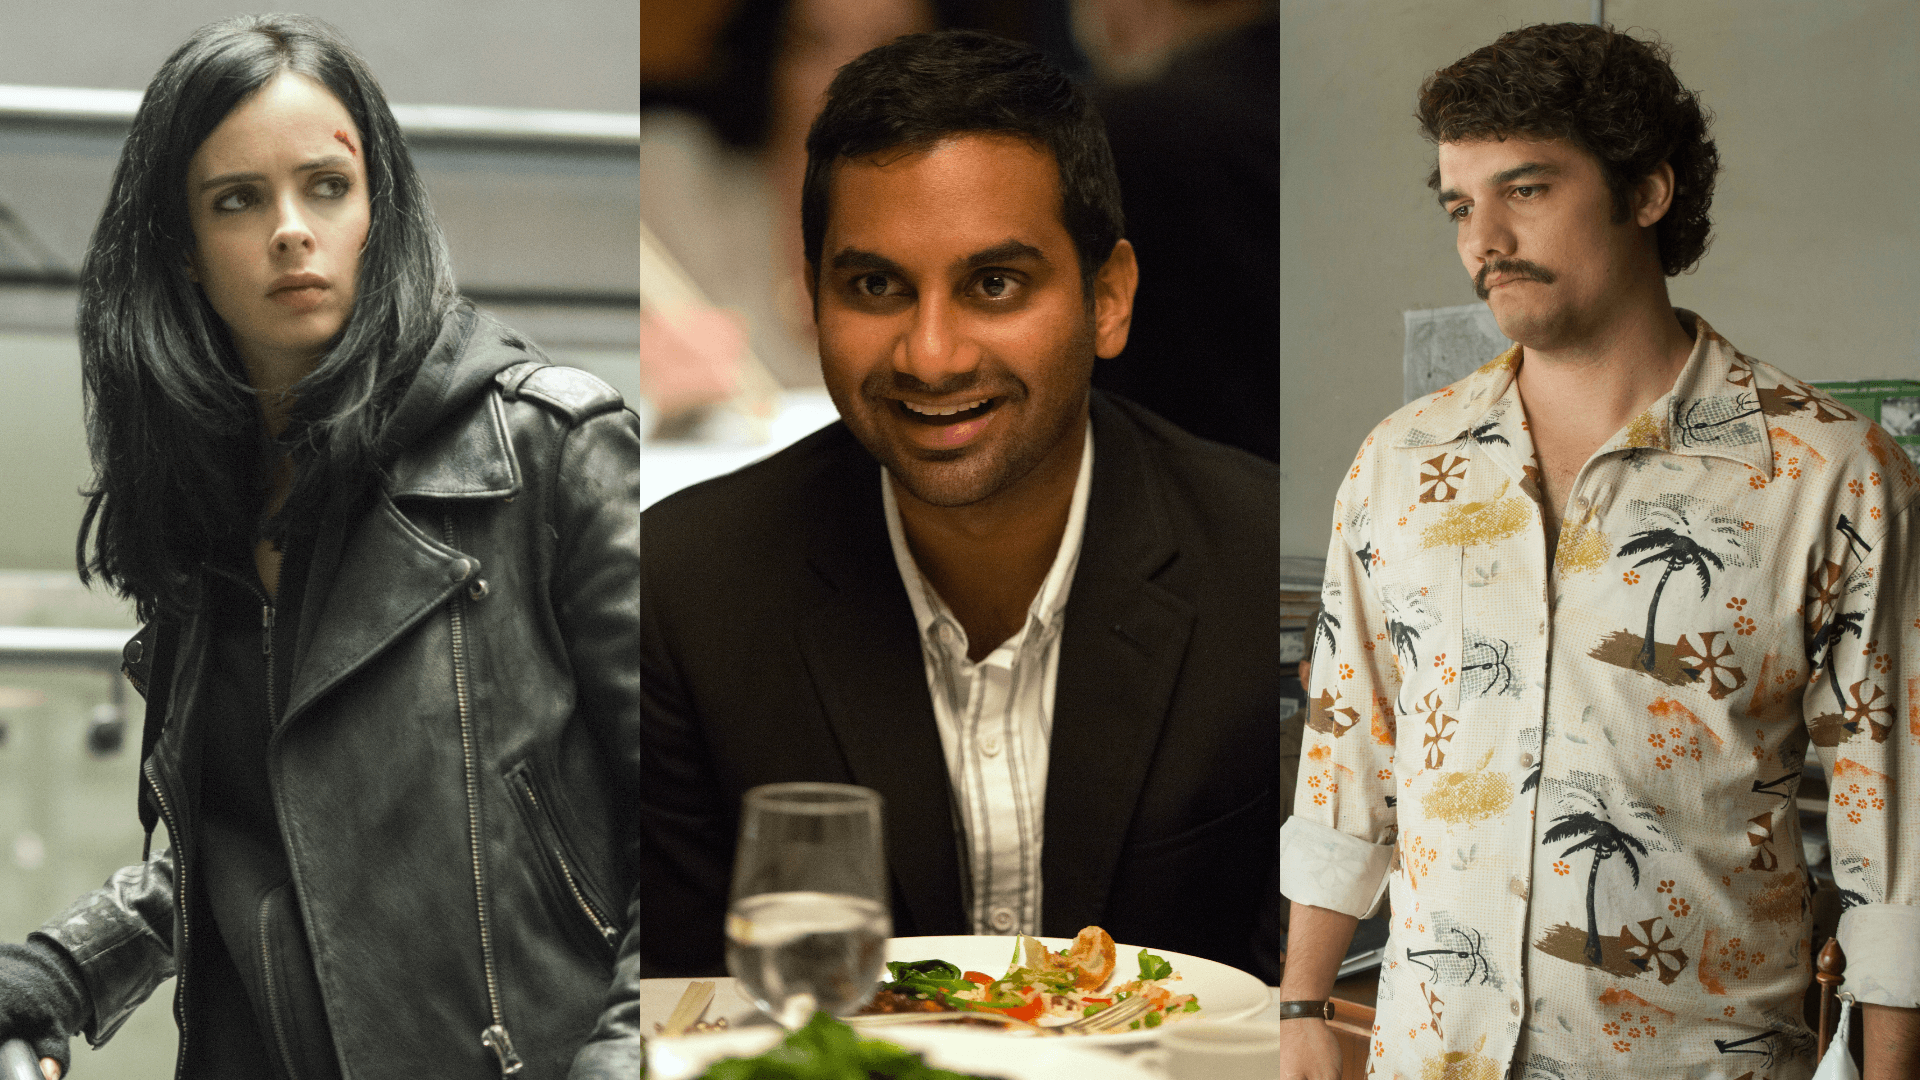 Netflix shows Marvel's Jessica Jones, Master Of None and Narcos